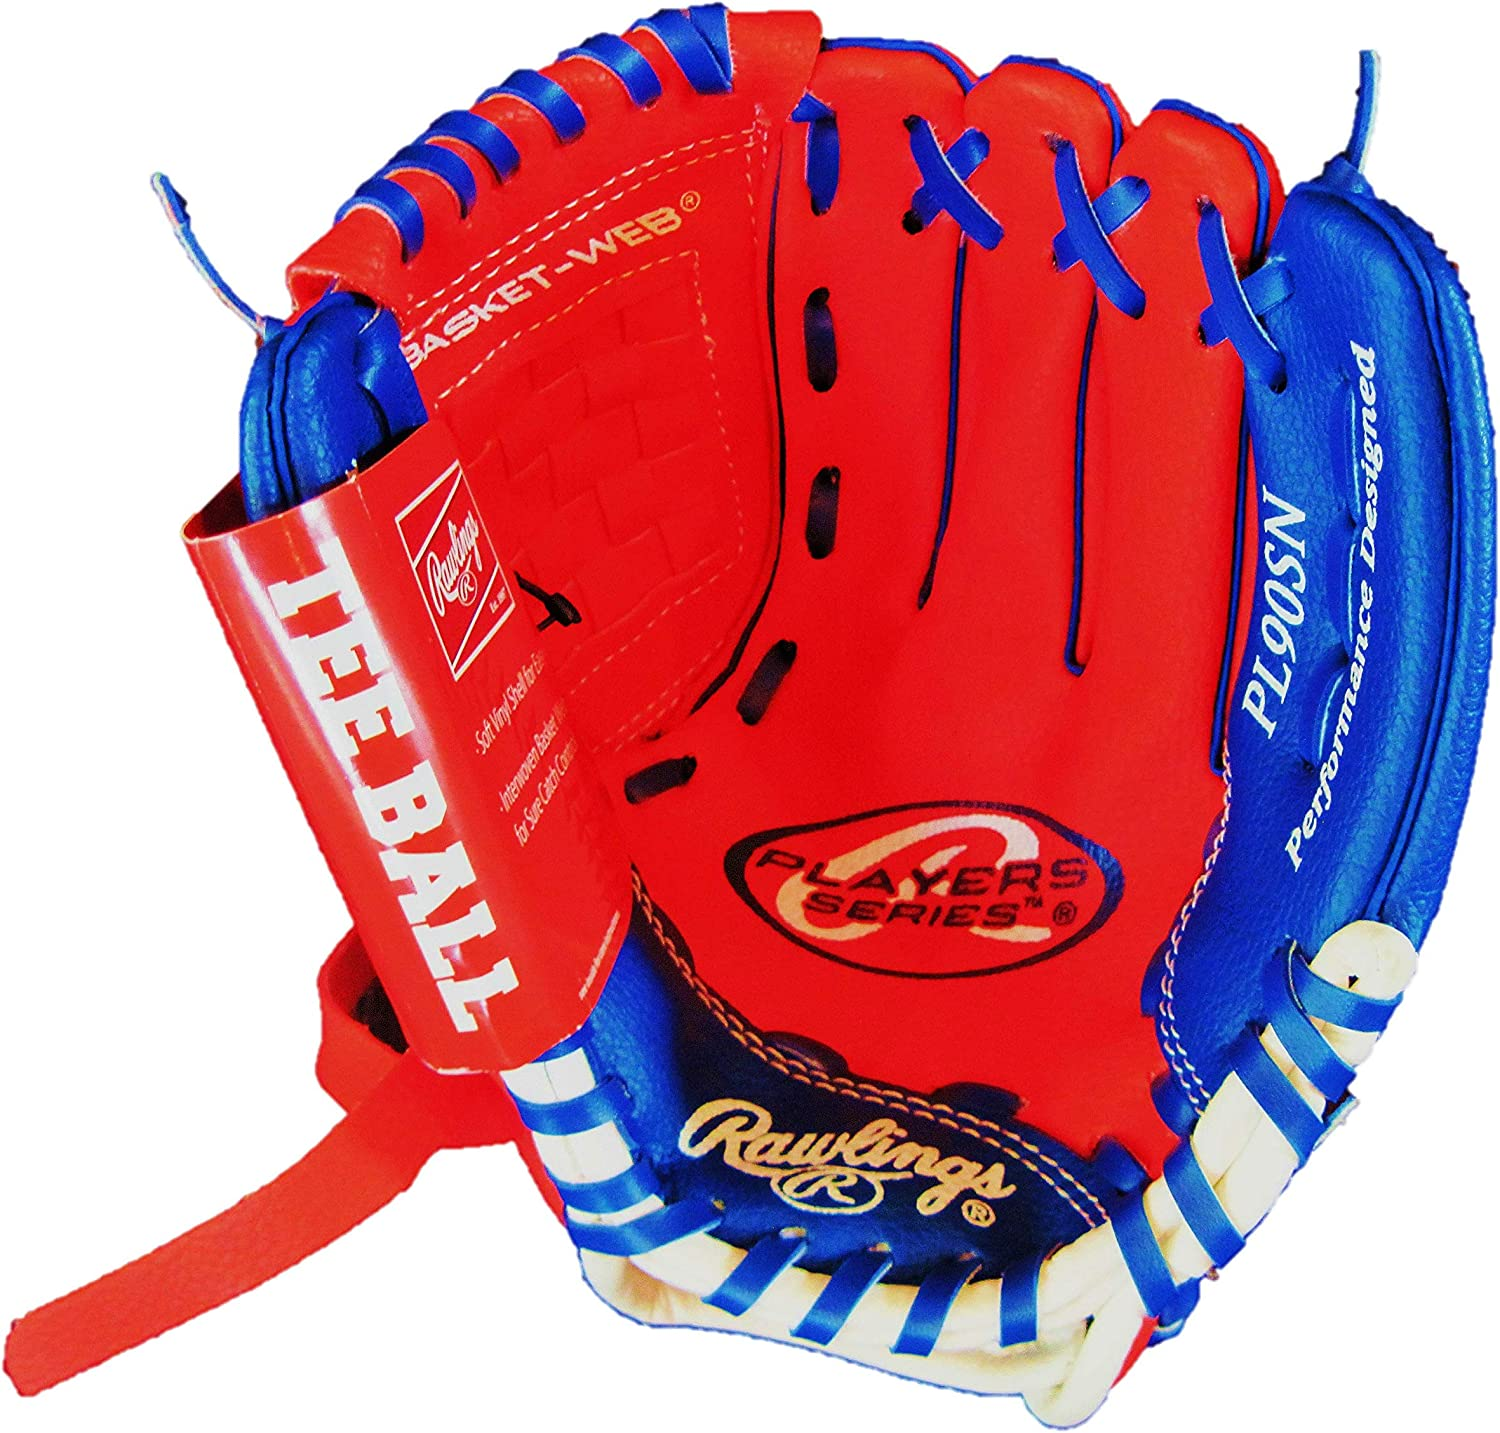 "Amazon.com : Rawlings YOUTH GLOVE 9"" Tee Ball RIGHT HAND THROW Red ..."